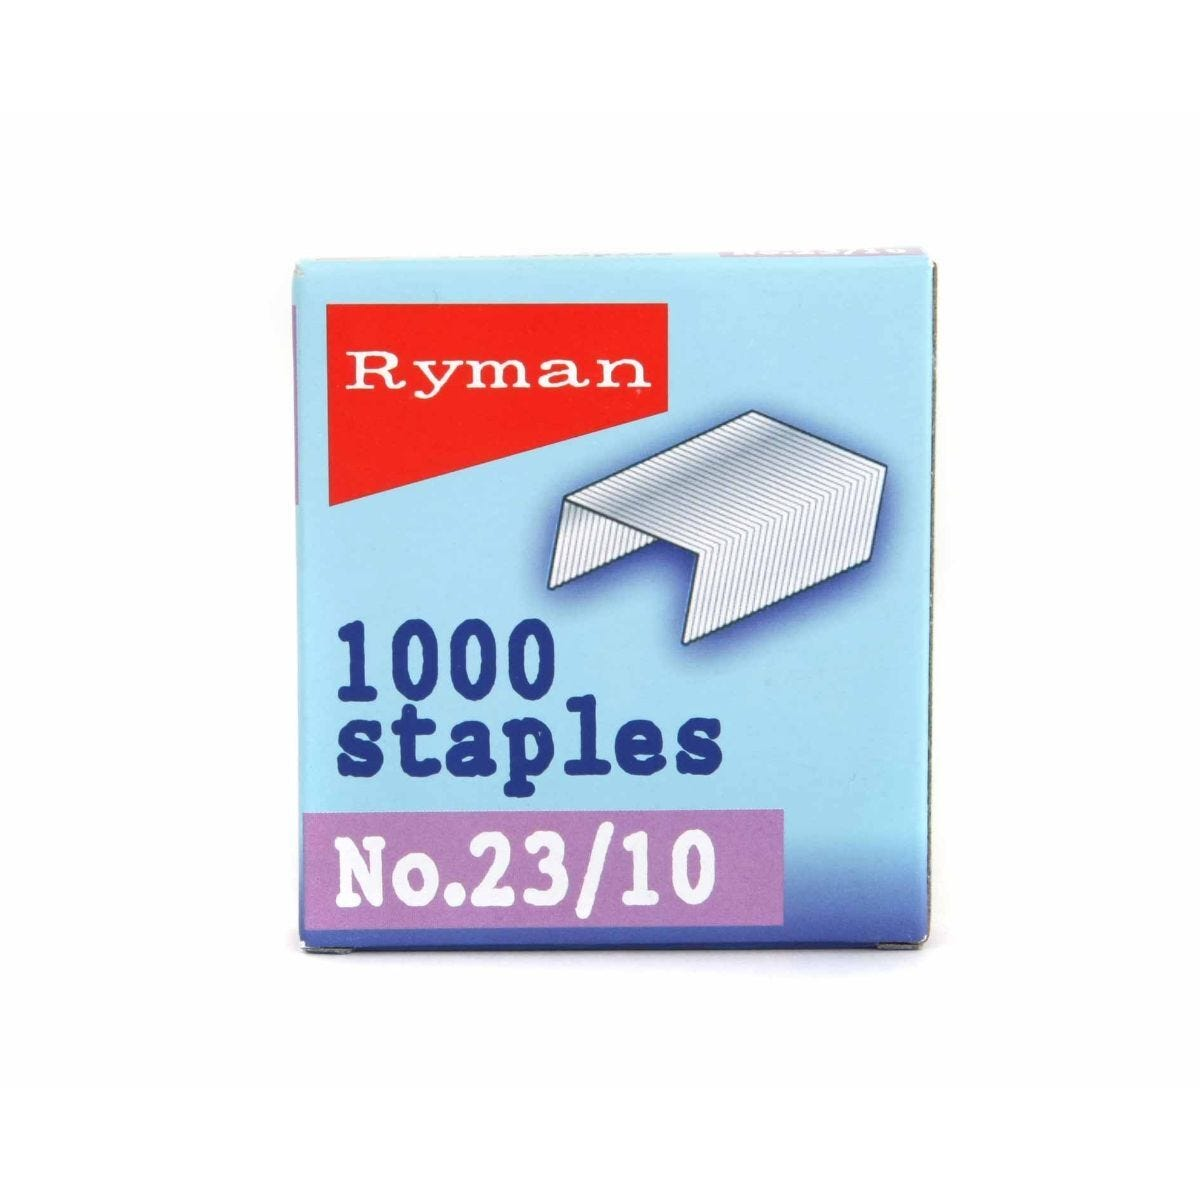 Ryman Staples 23/10mm Pack of 1000